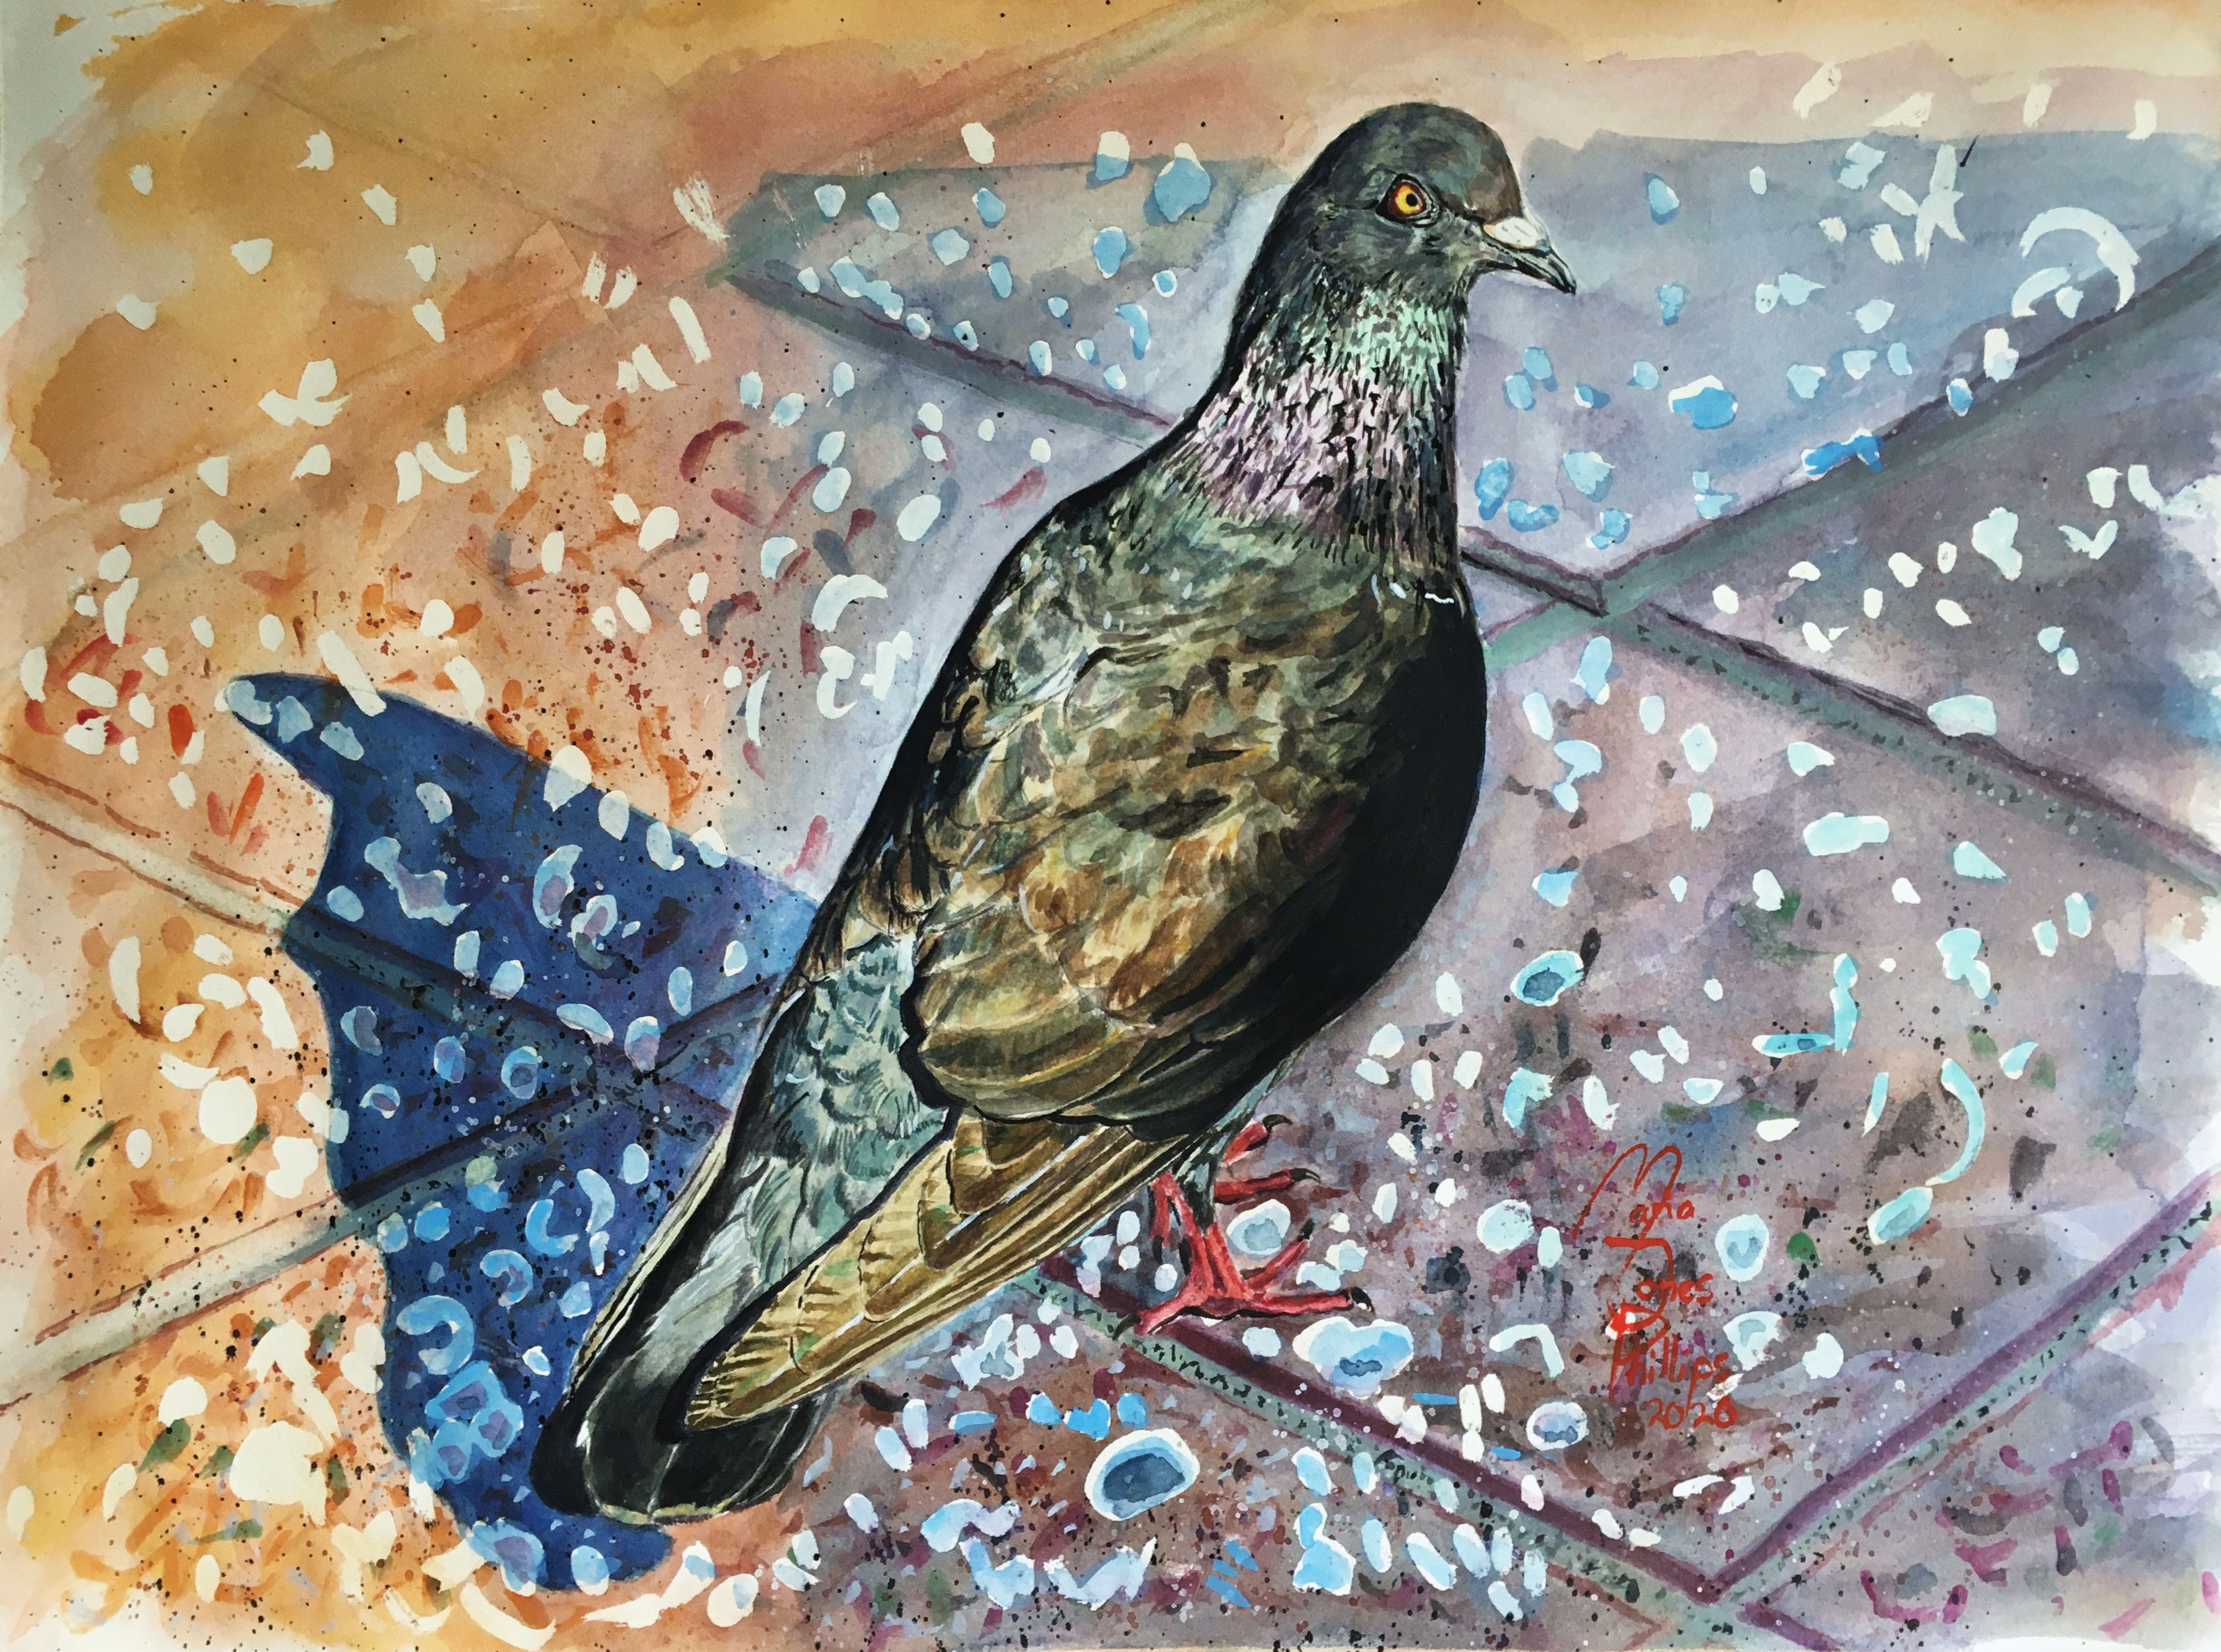 Grumpy Pigeon – Water Media Painting